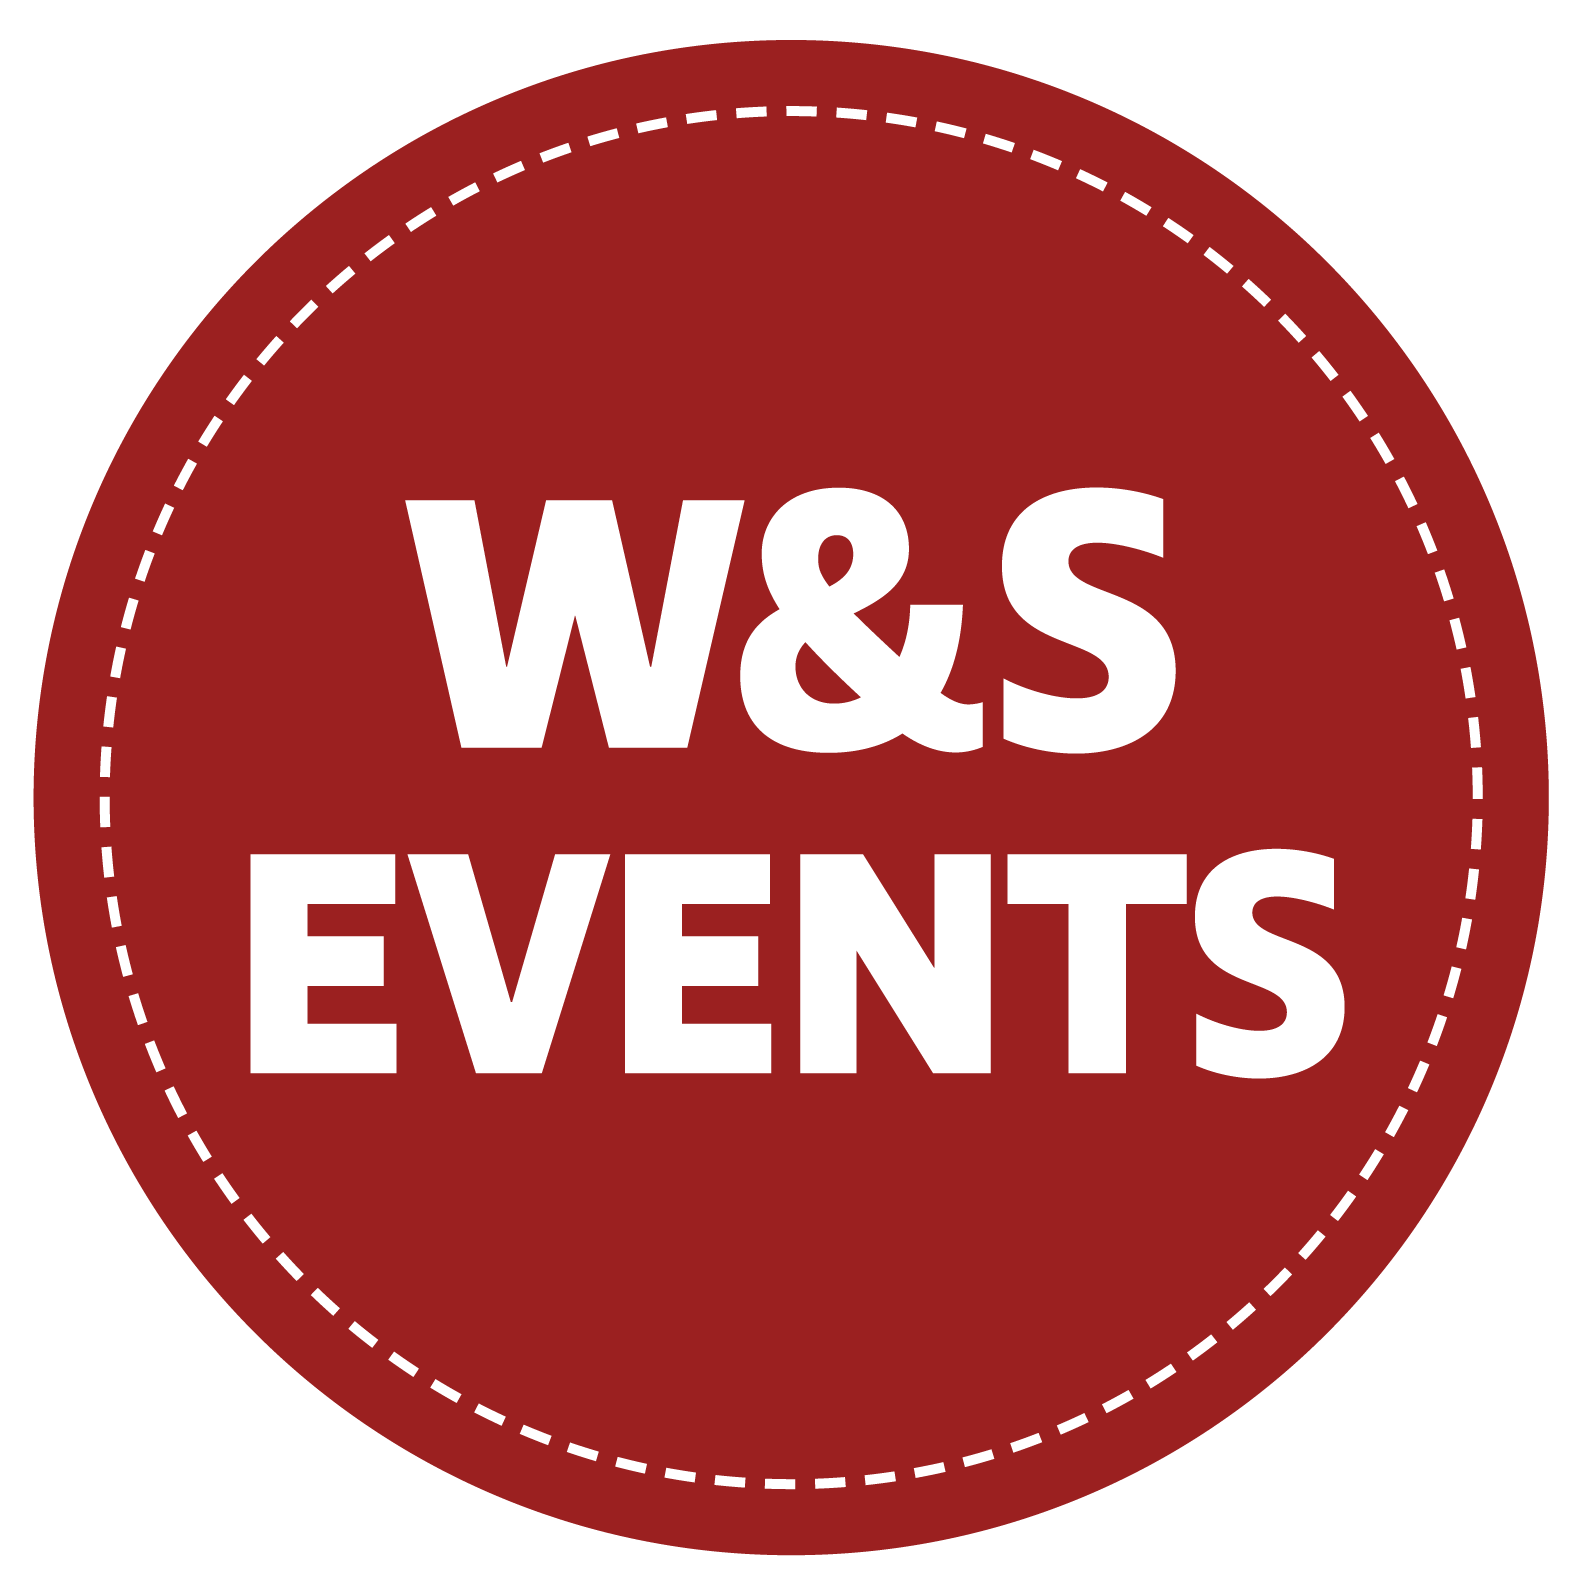 W&S Events